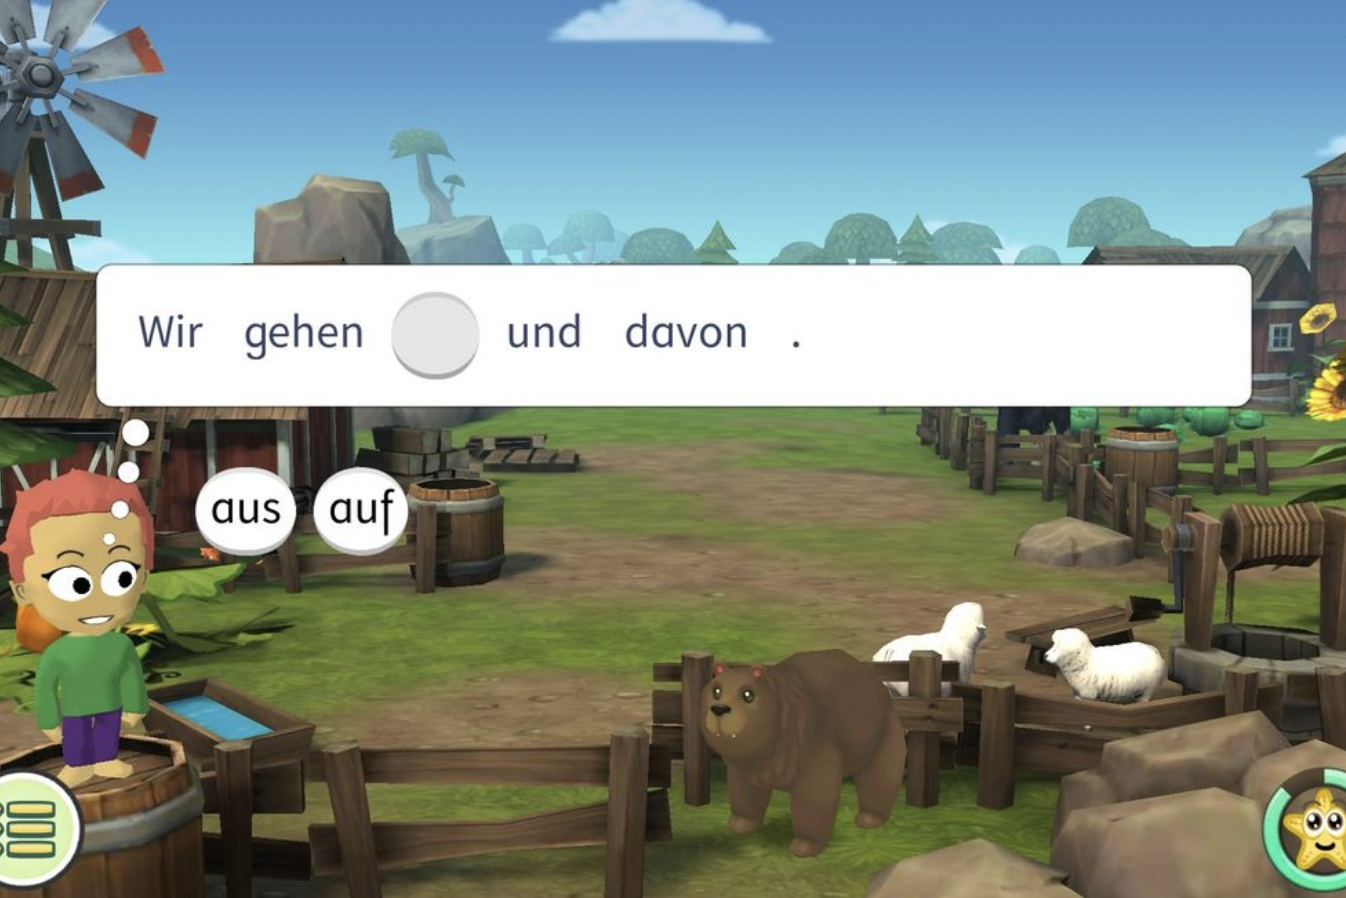 Preview image for LOM object GraphoLearn Swiss German